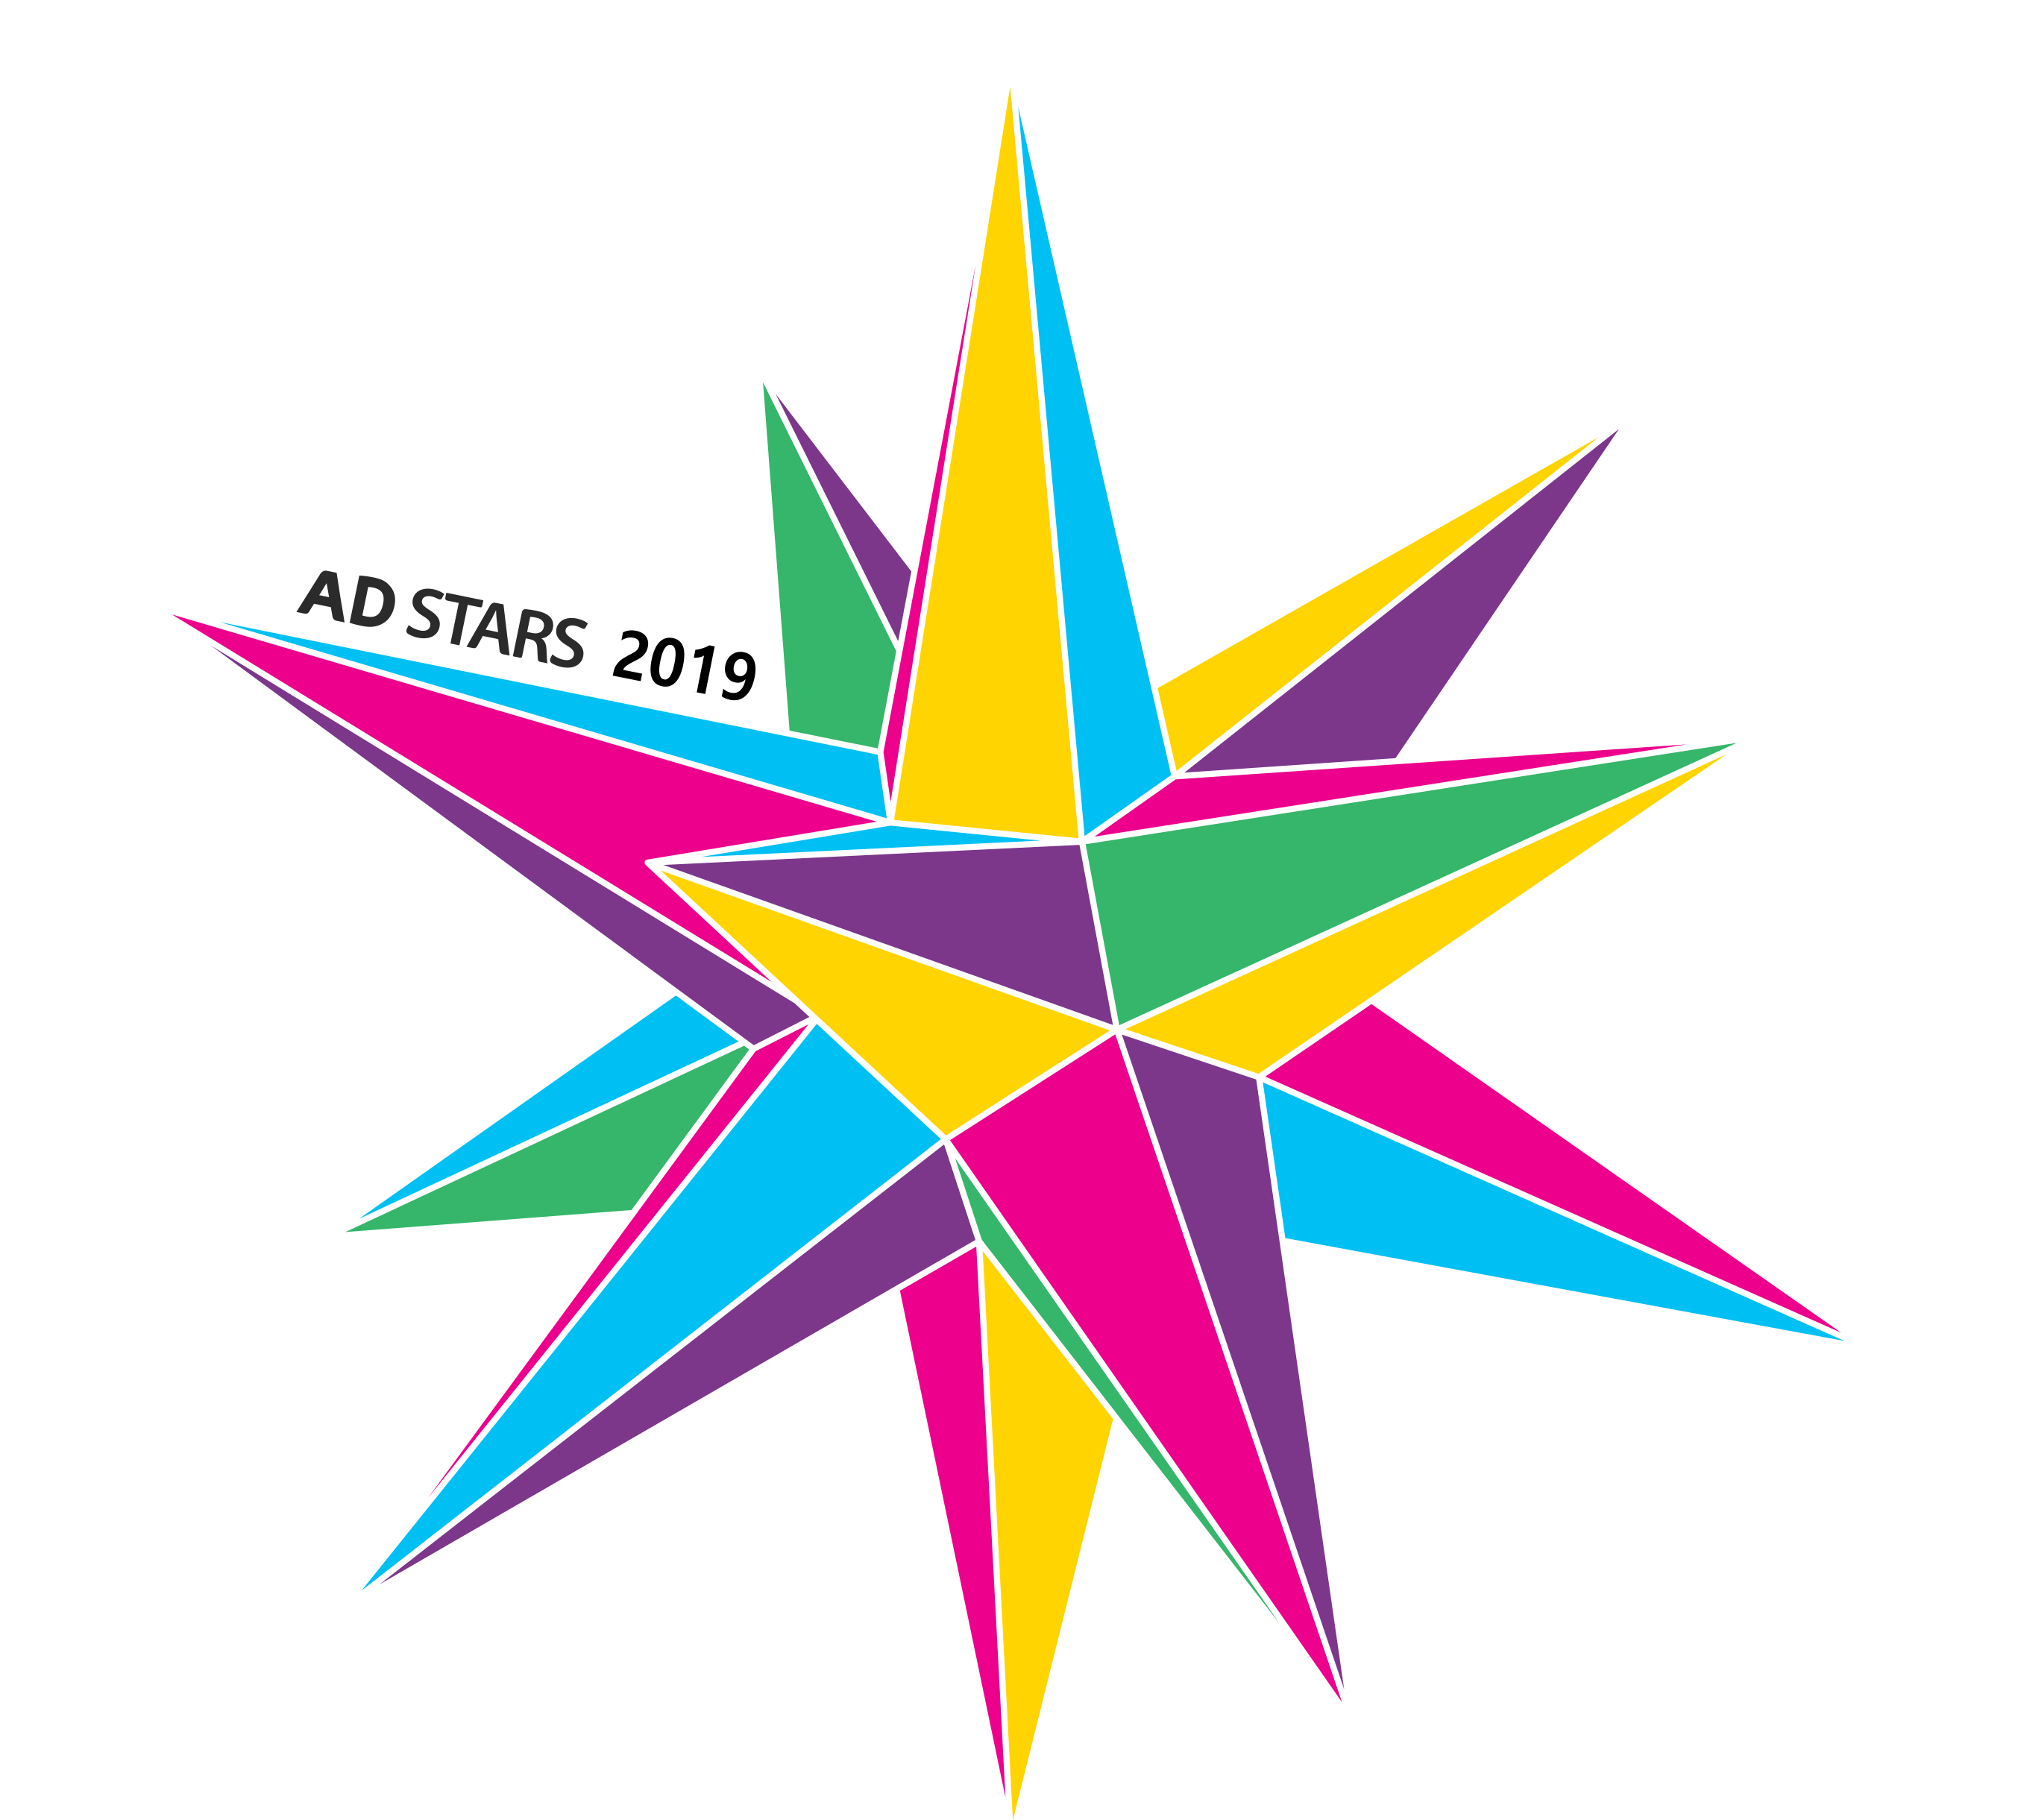 Ad Stars receives over 20,600 entries from 60 countries